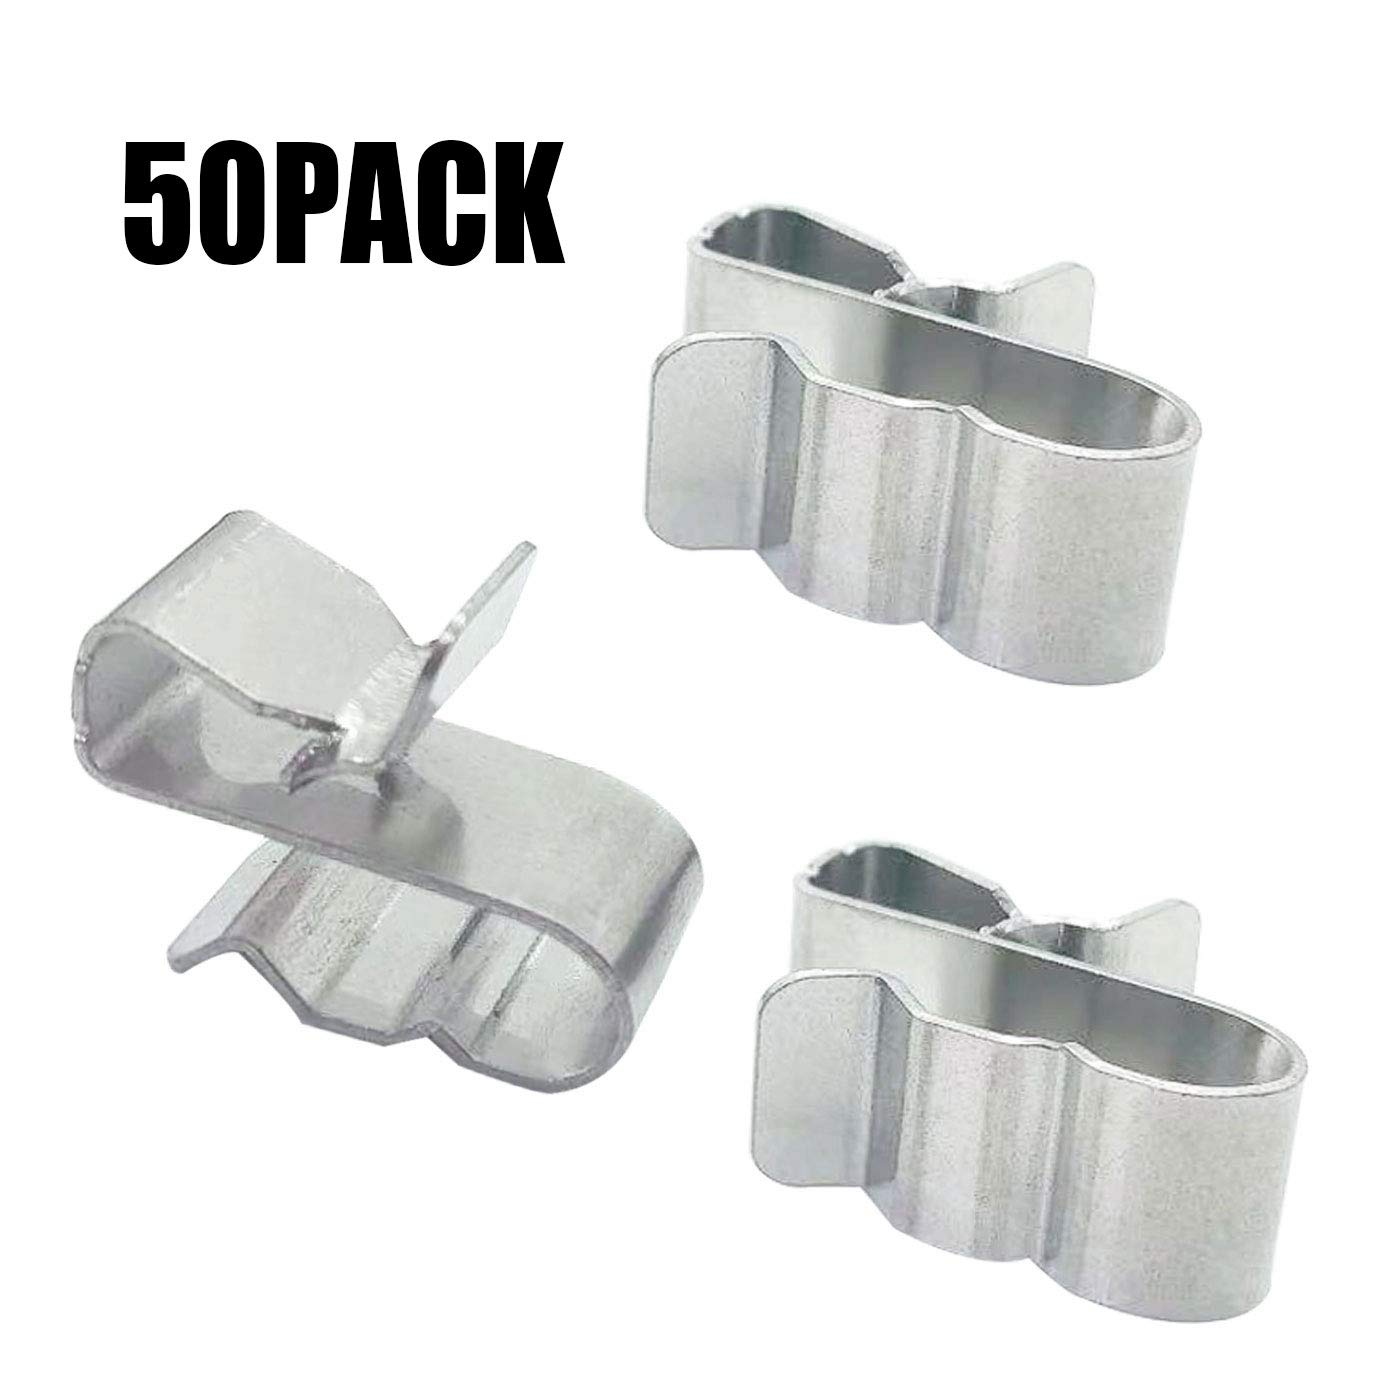 DaNaRaa 20mm Stainless Steel Sunrunner Cable Clips Trailer Frame Wire Clips/ 50 Pieces